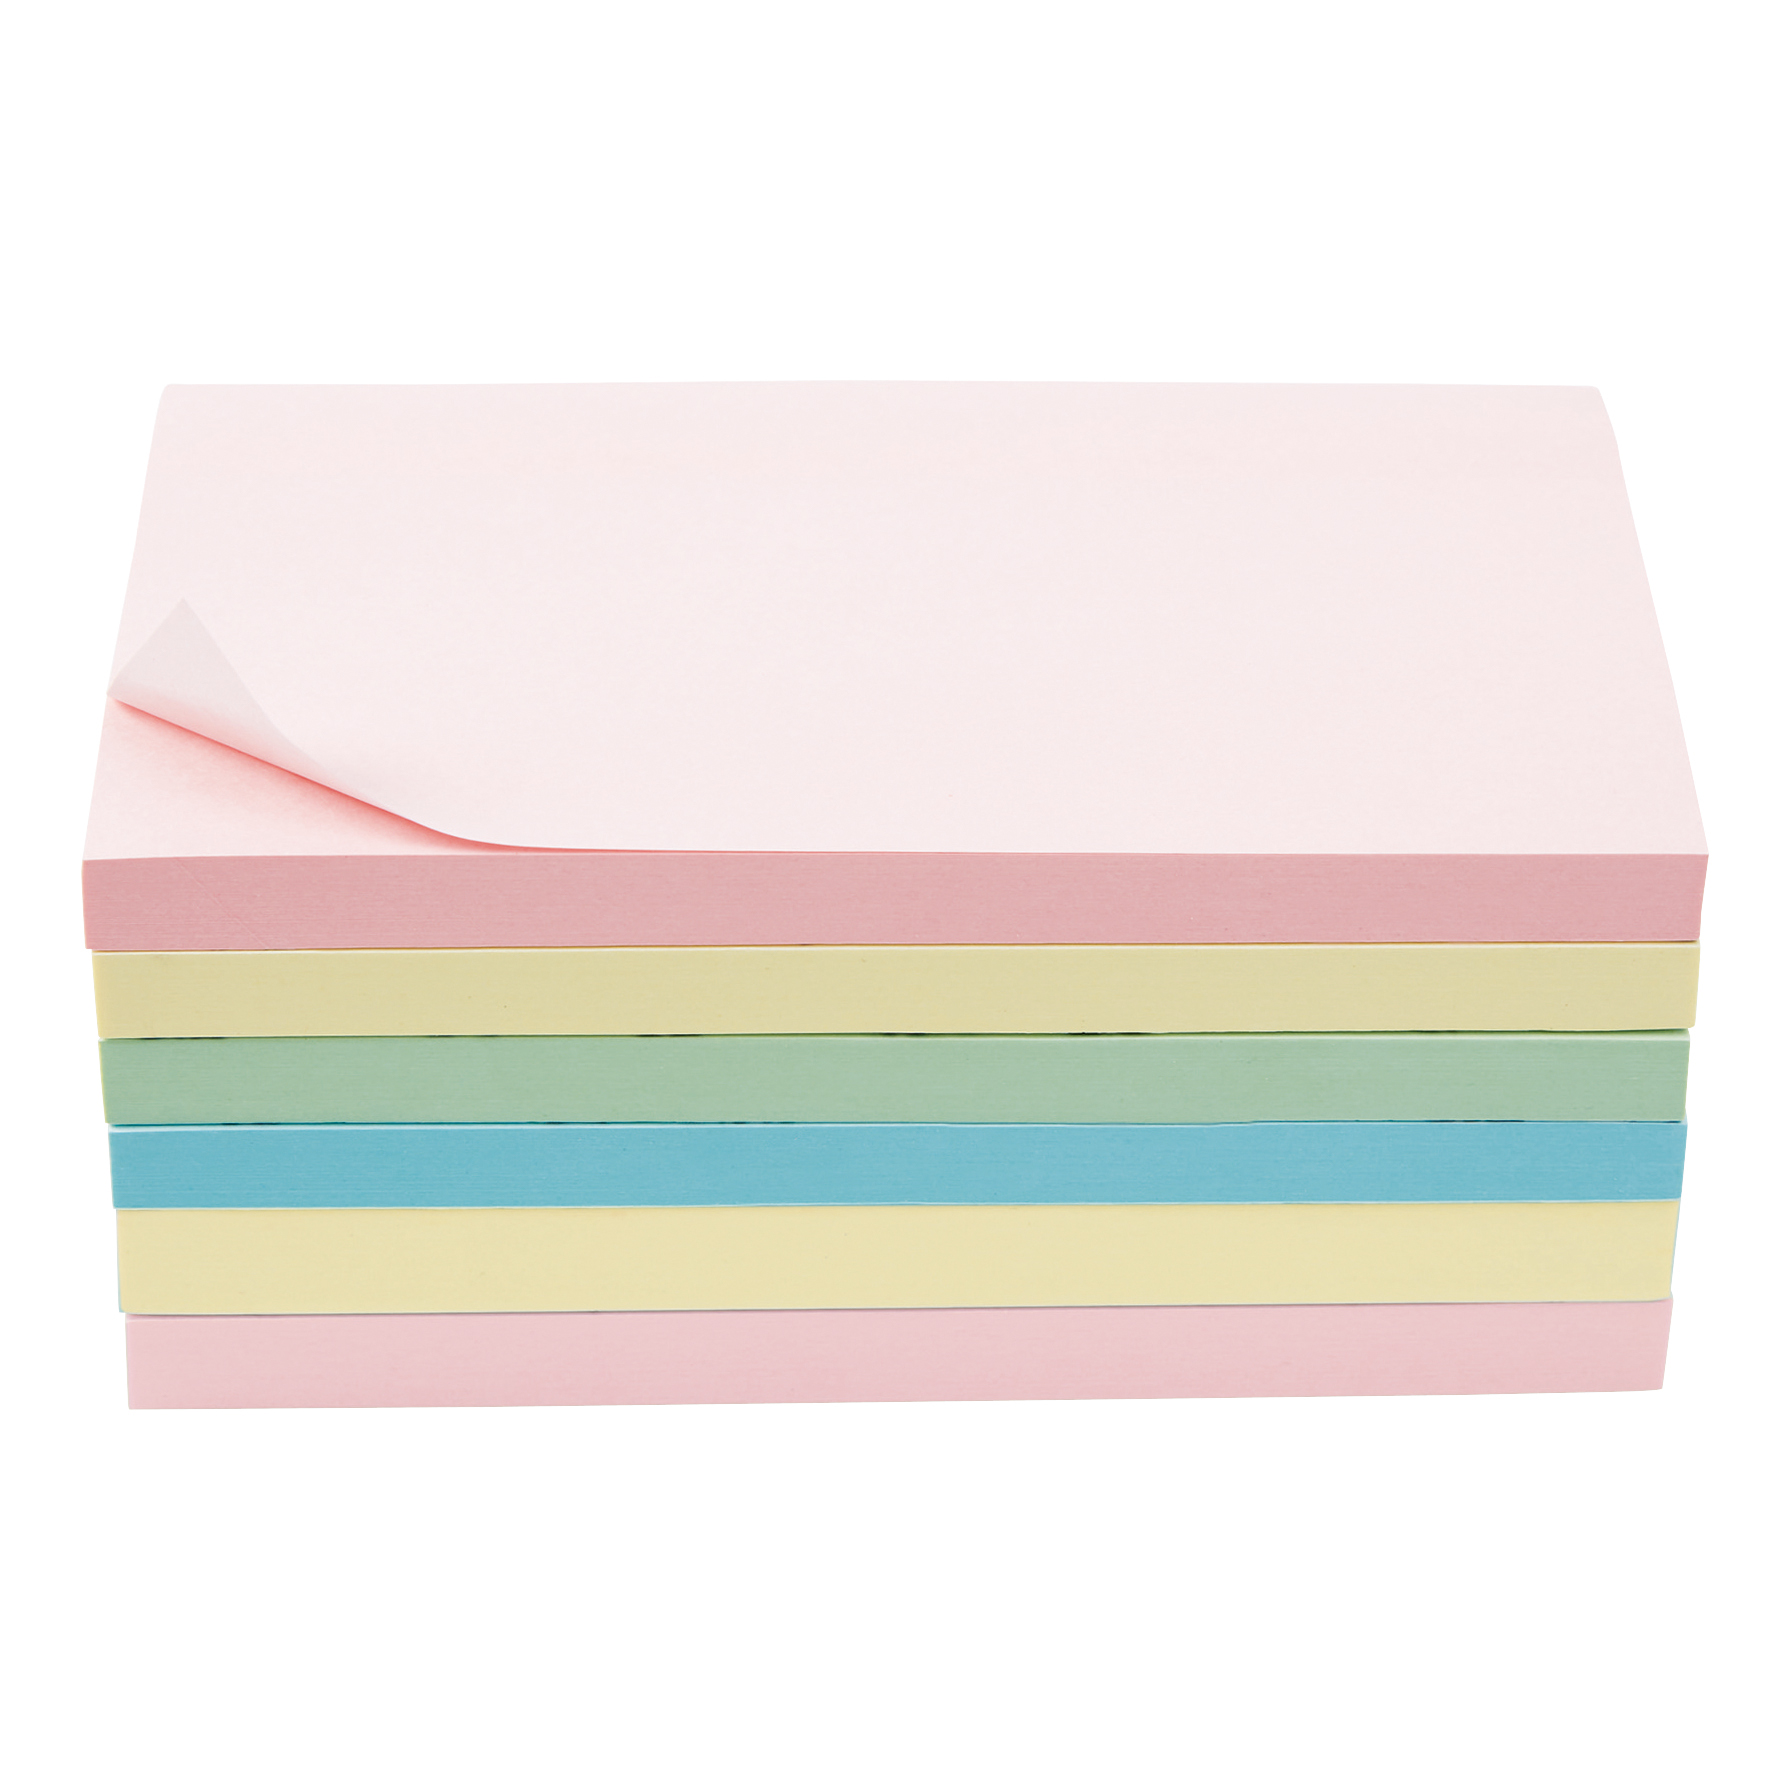 Coloured 5 Star Office Extra Sticky Re-Move Notes Pad of 90 Sheets 76x127mm 4 Assorted Pastel Colours [Pack 6]